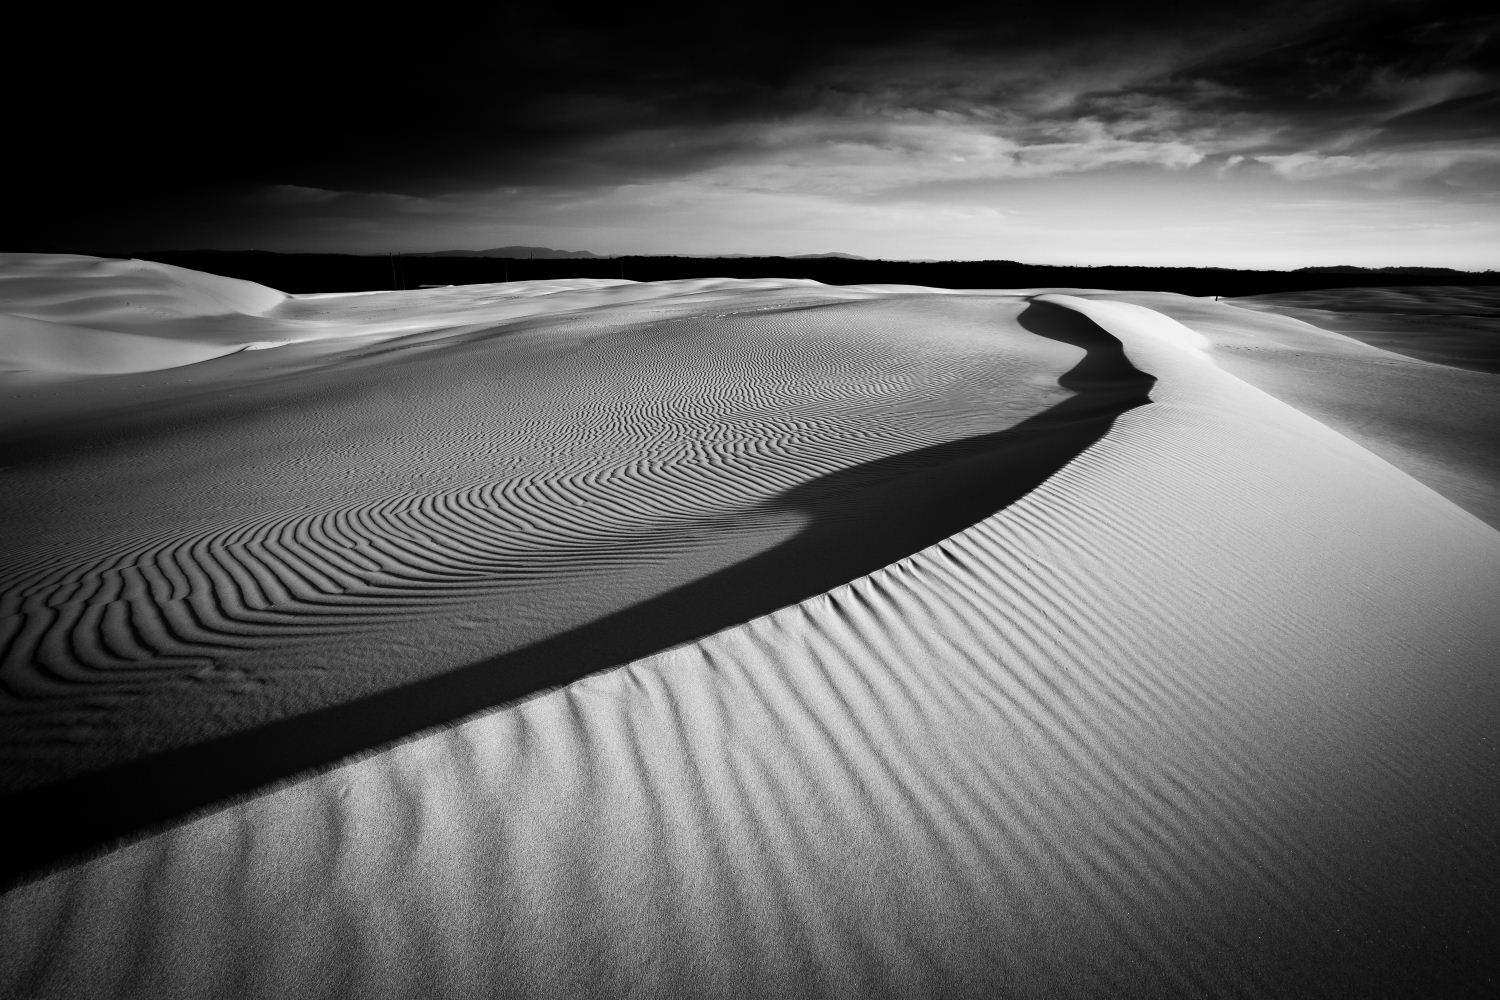 Stockton Study in Black and White, Stockton Sands, Mid North Coast, NSW